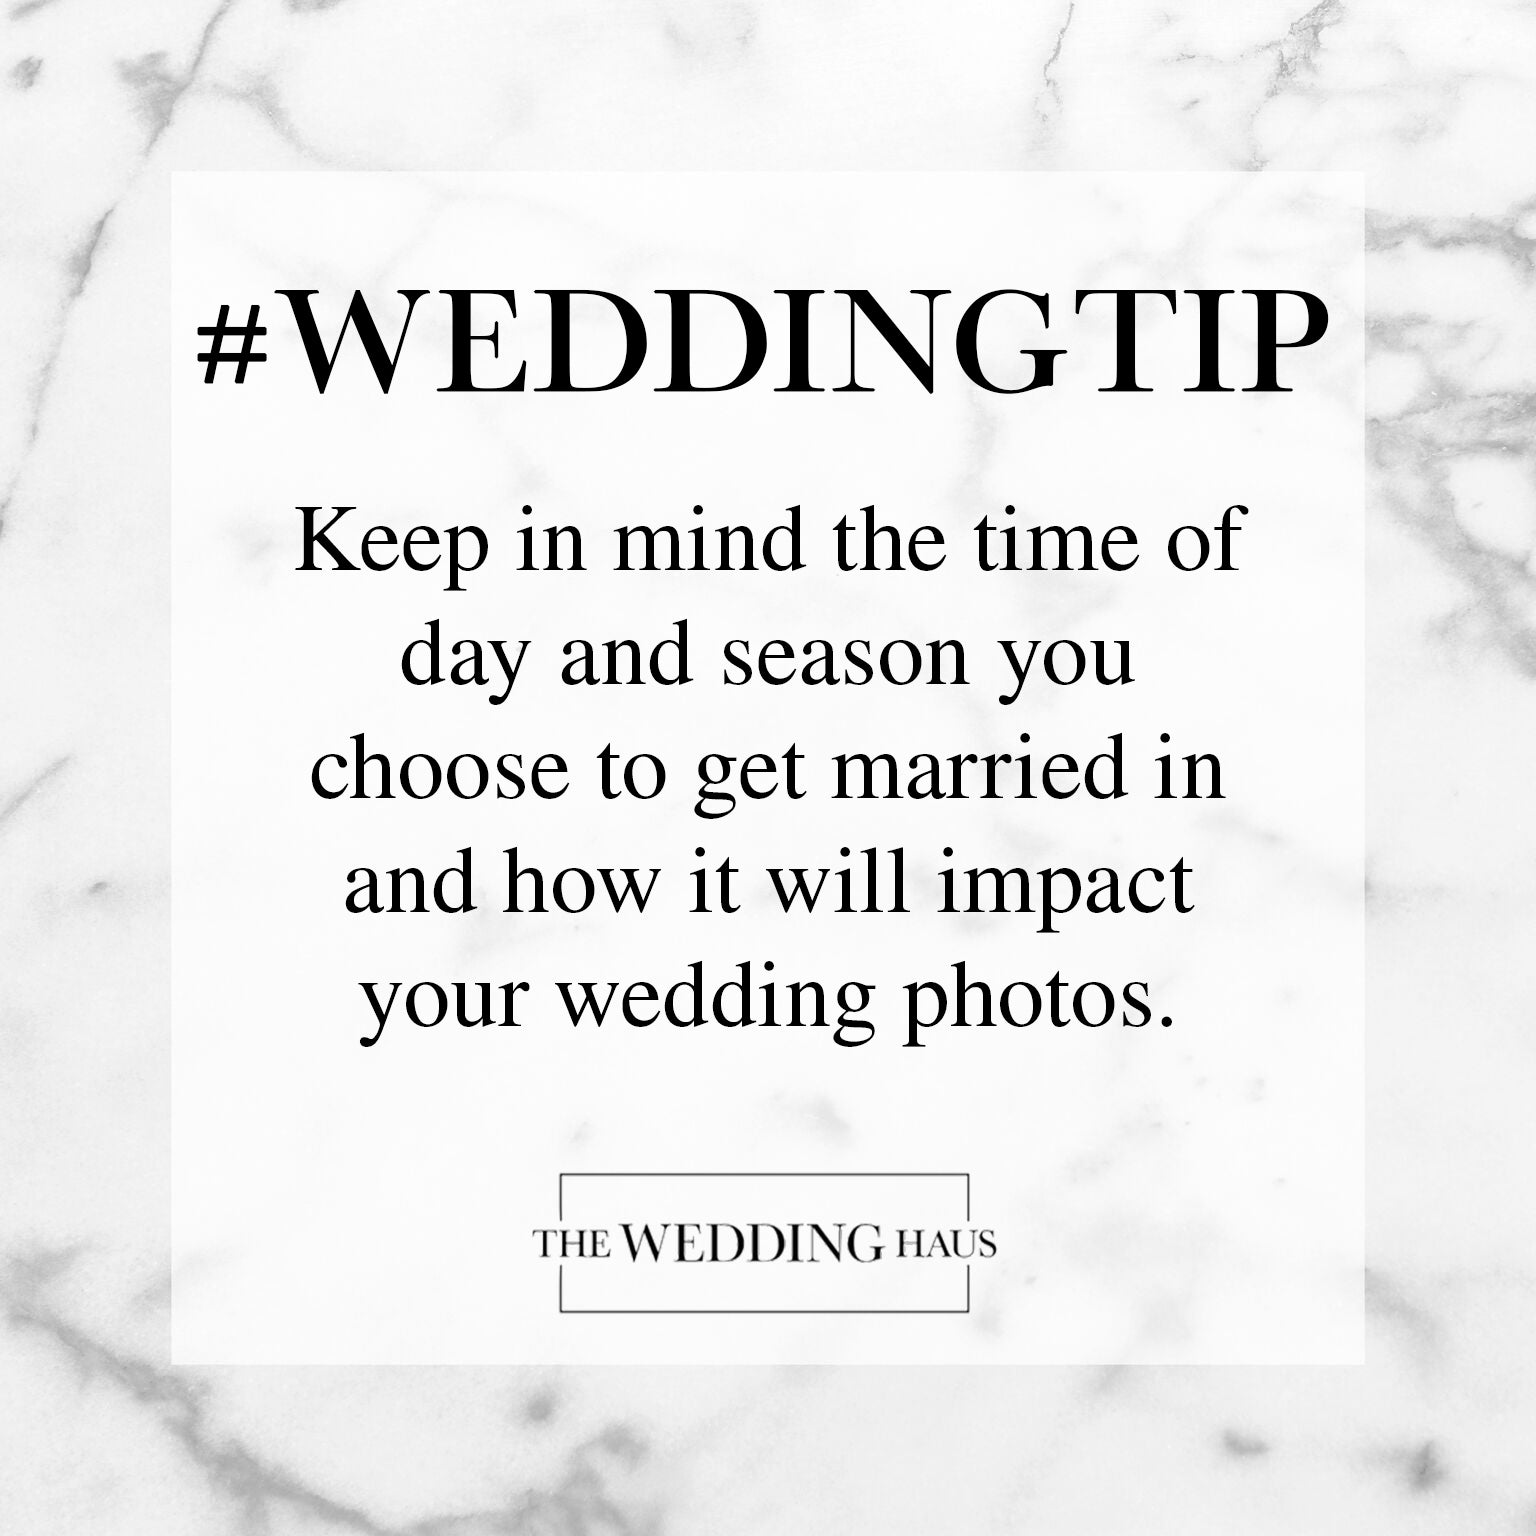 Selecting a Season Wedding Tip from The Wedding Haus